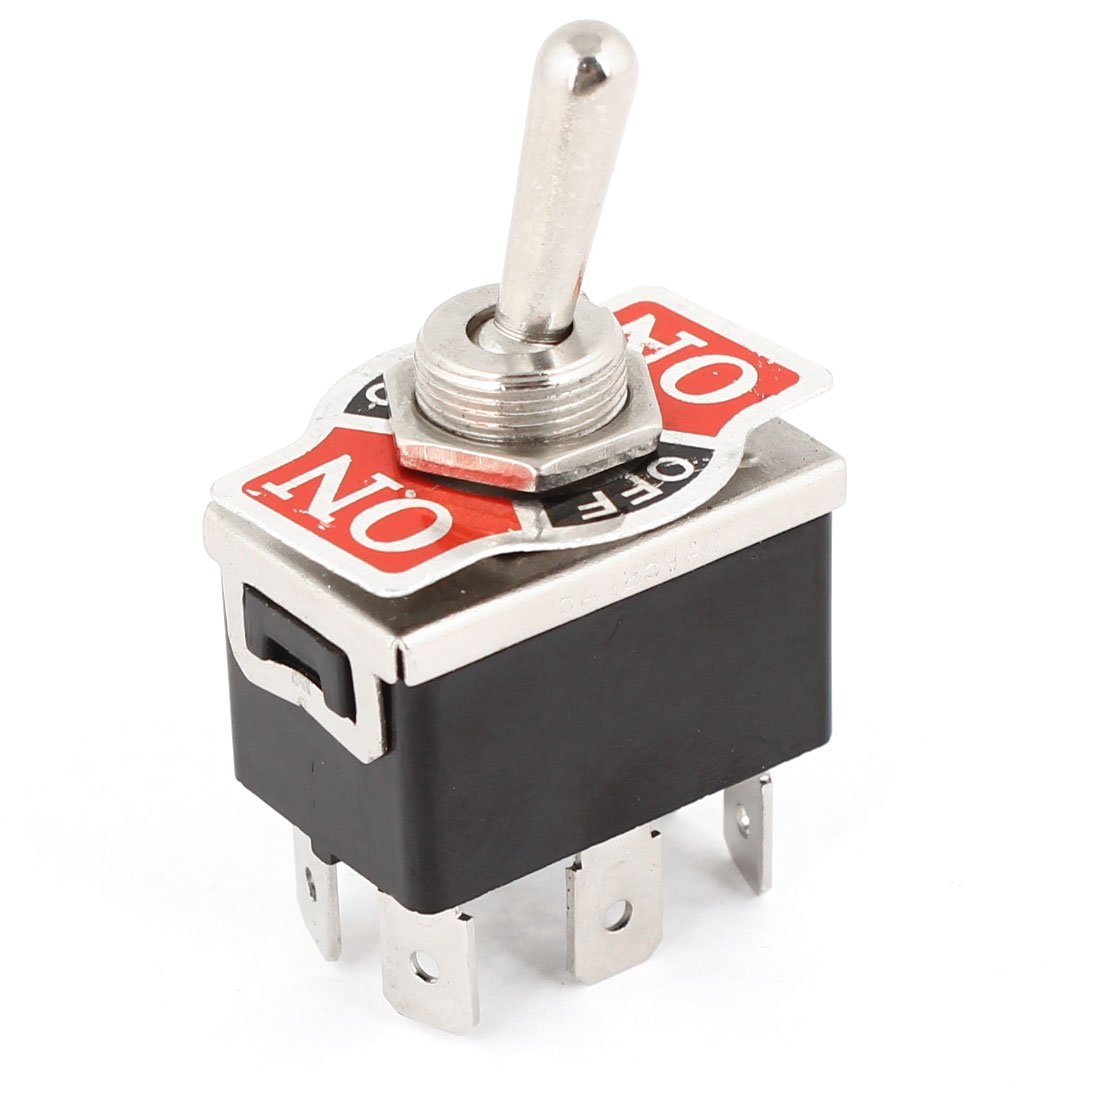 Lighting Accessories Ac 250v/10a 125v/15a Dpdt 3 Position On/off/on 6 Pins Toggle Switch Black+silver To Help Digest Greasy Food Lights & Lighting